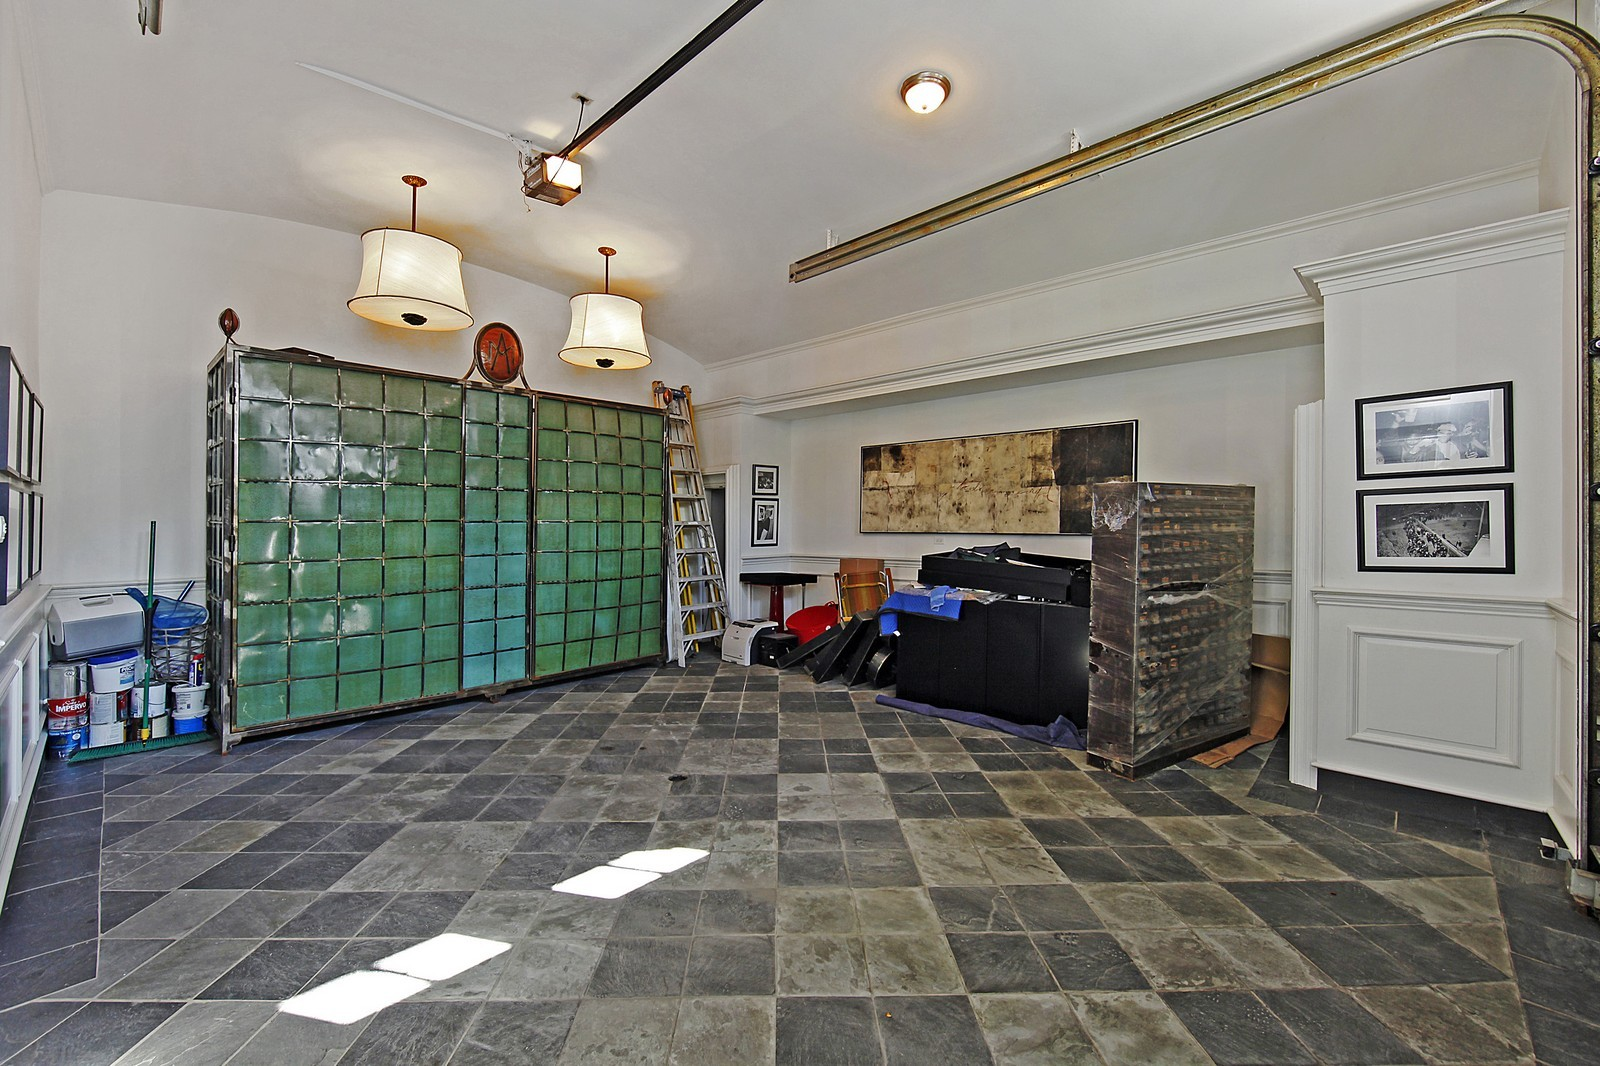 Real Estate Photography - 1424 W Ohio St, Chicago, IL, 60622 - Garage